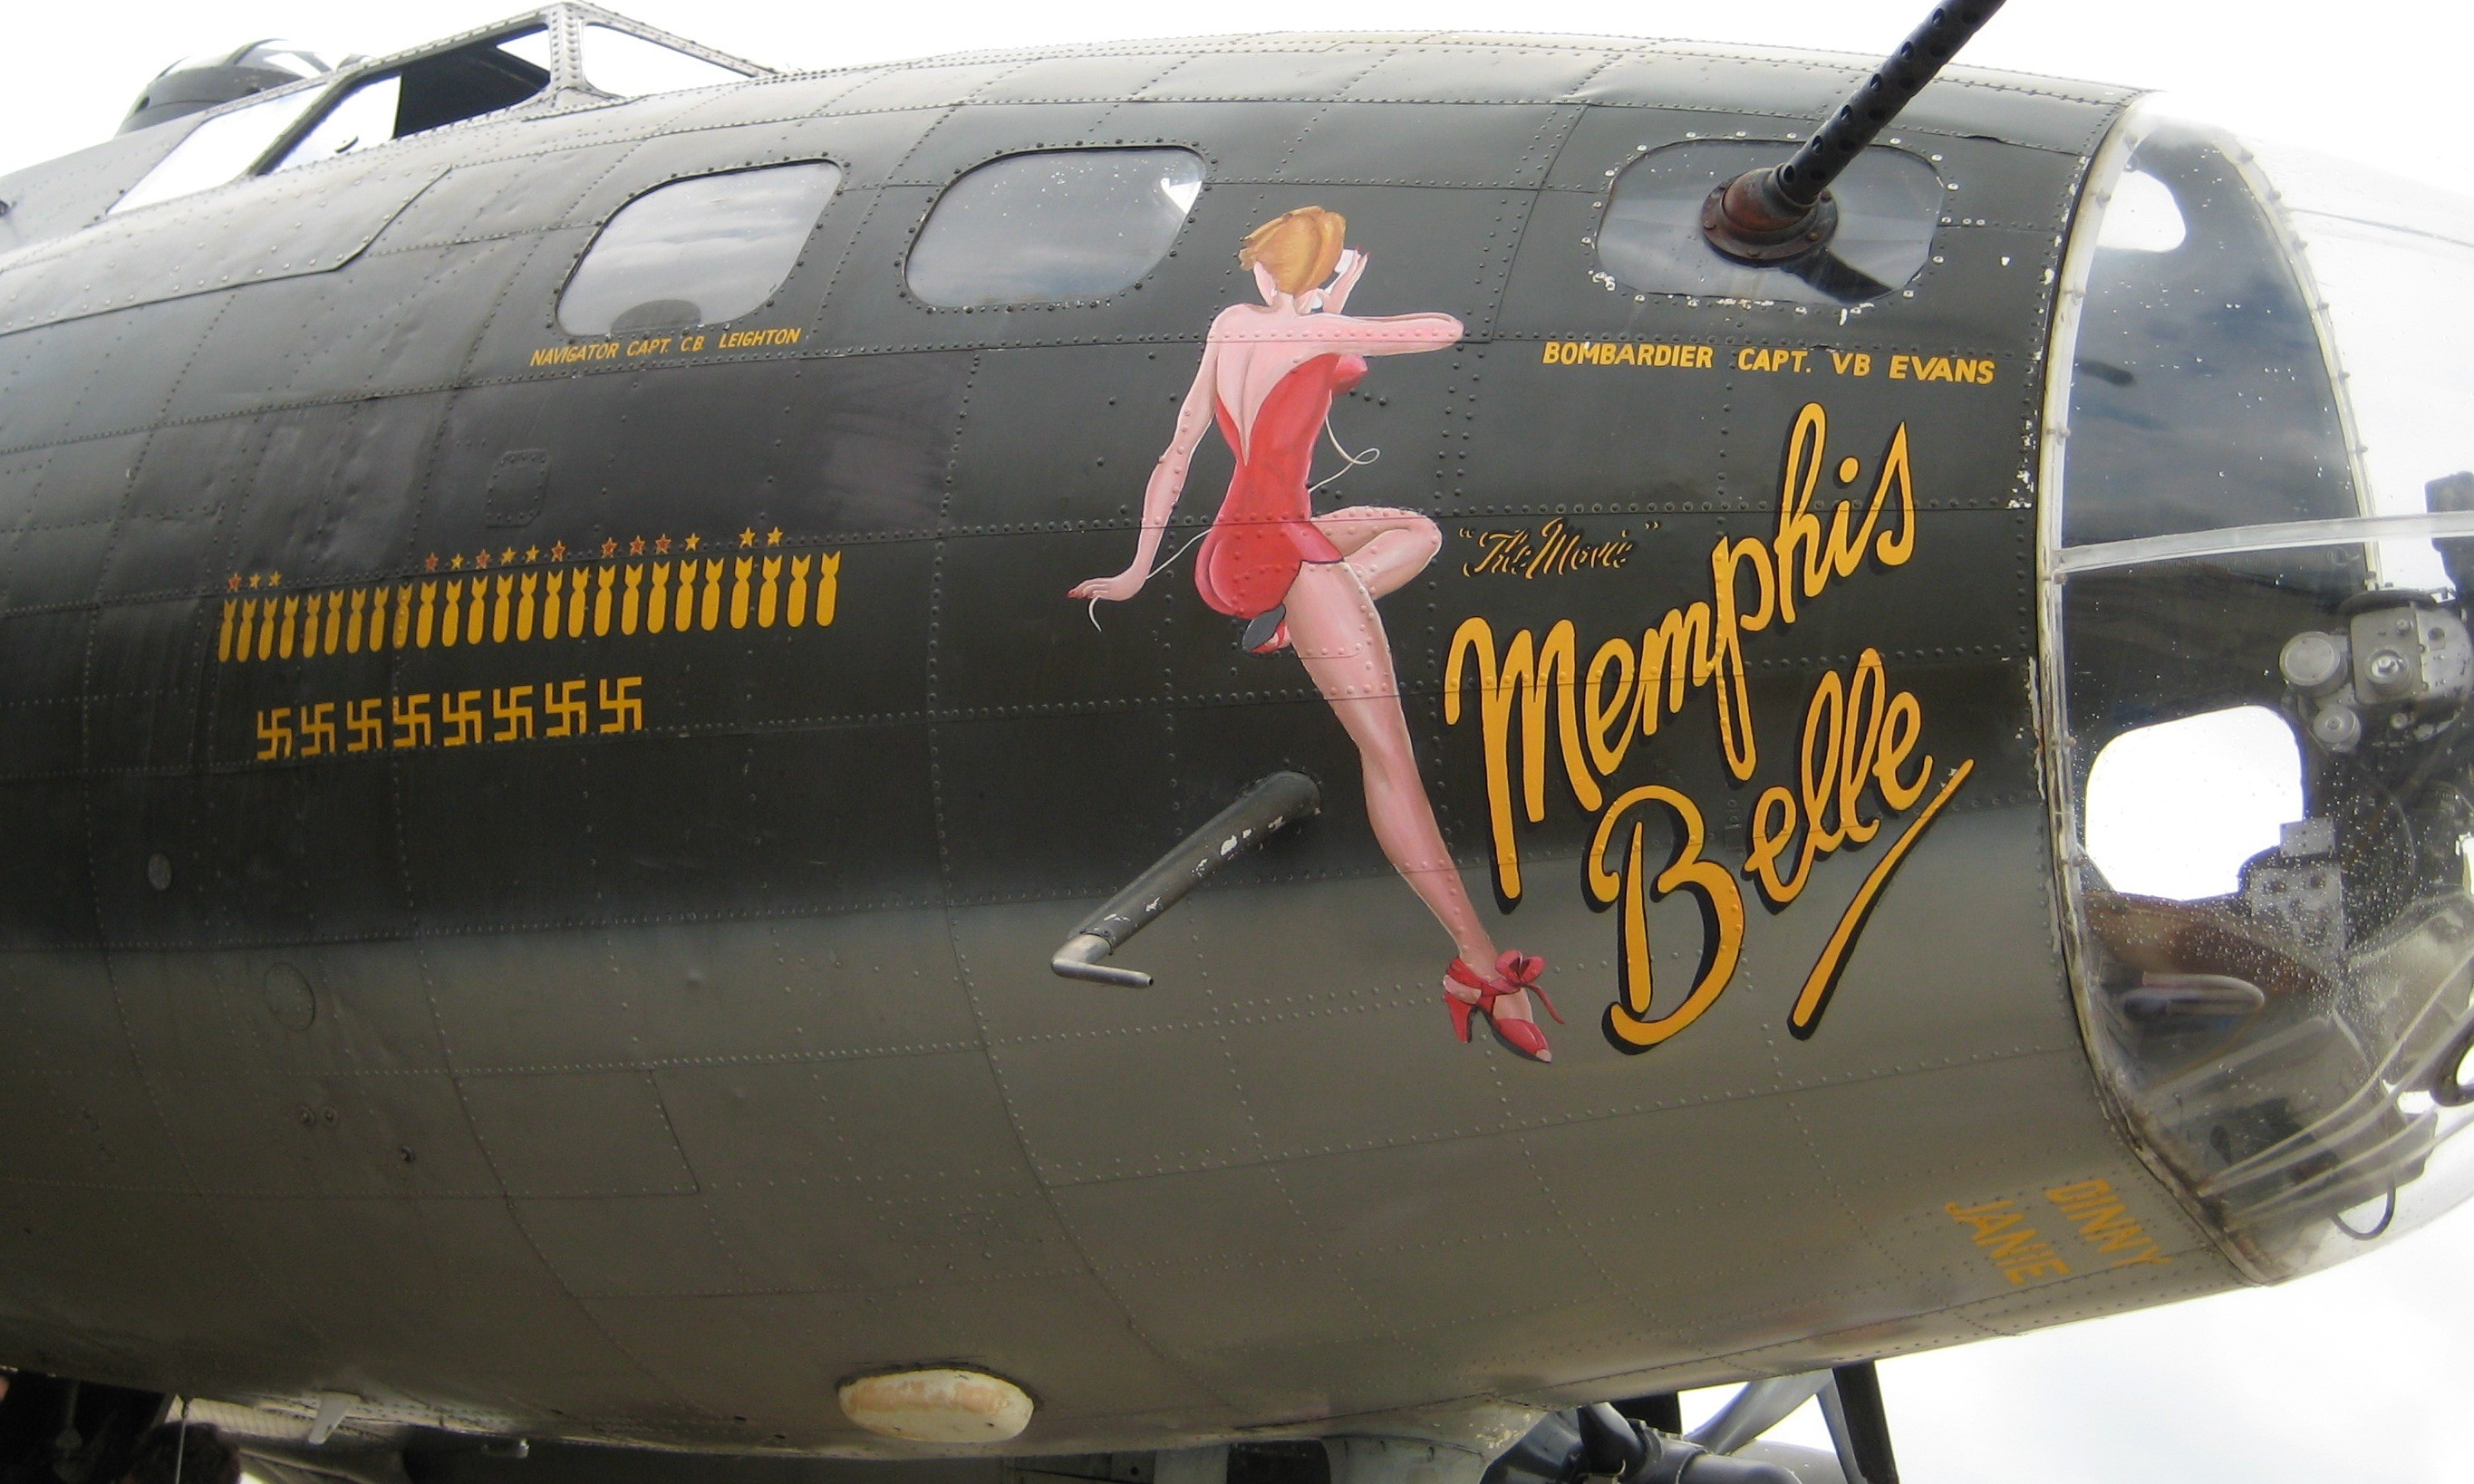 "2730x1638 Memphis Belle"" 360109 - is one of the top wallpapers in the Travel category."